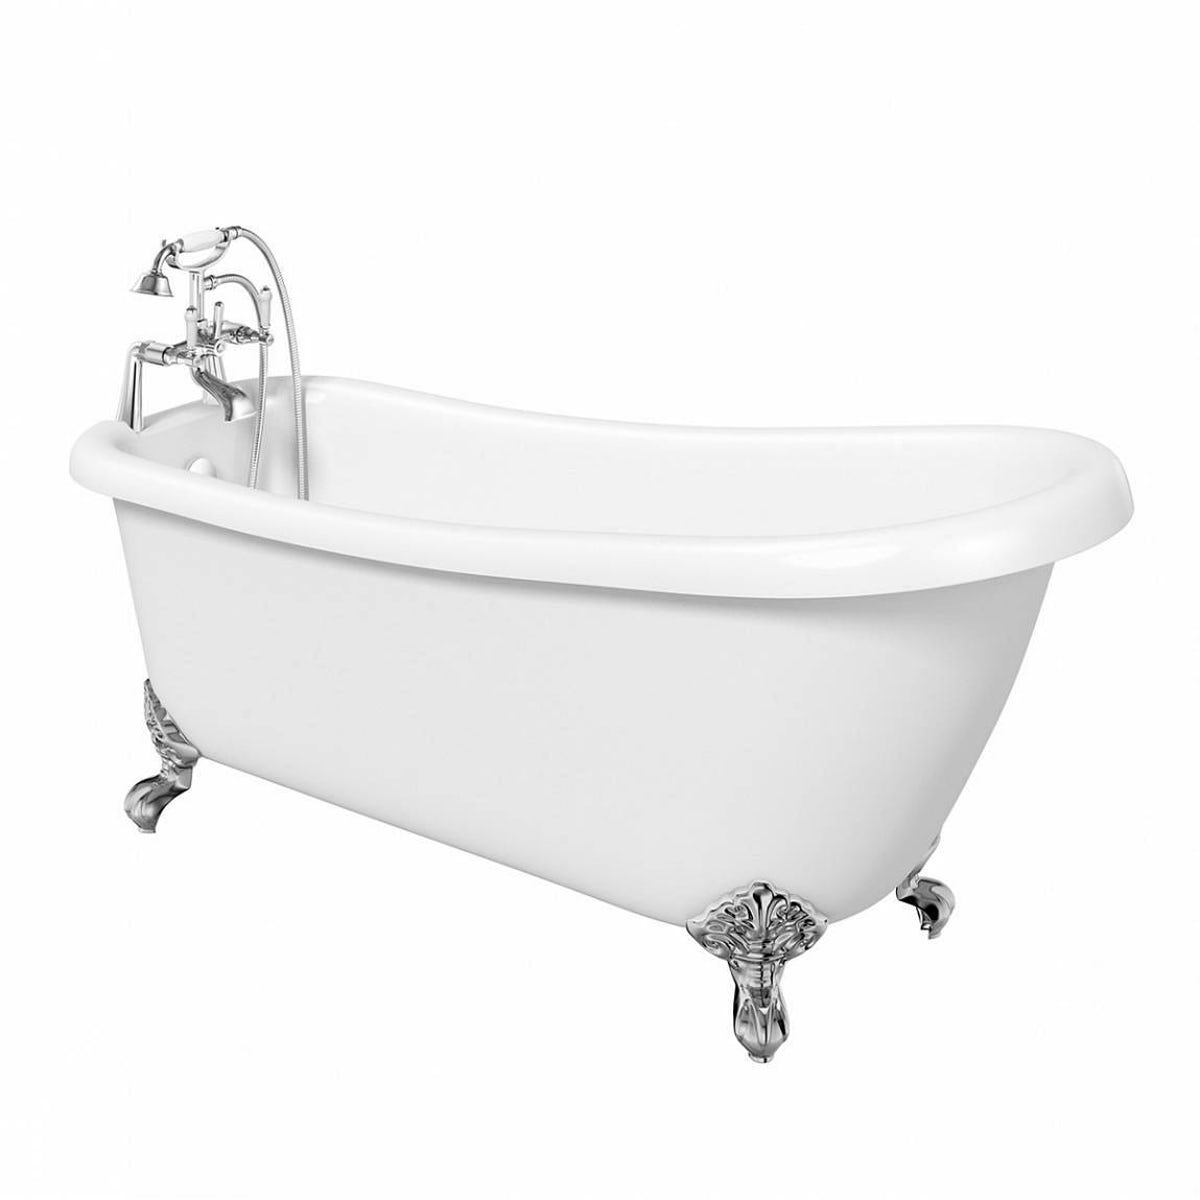 The bath co winchester slipper bath with ball feet offer for Small baths 1200